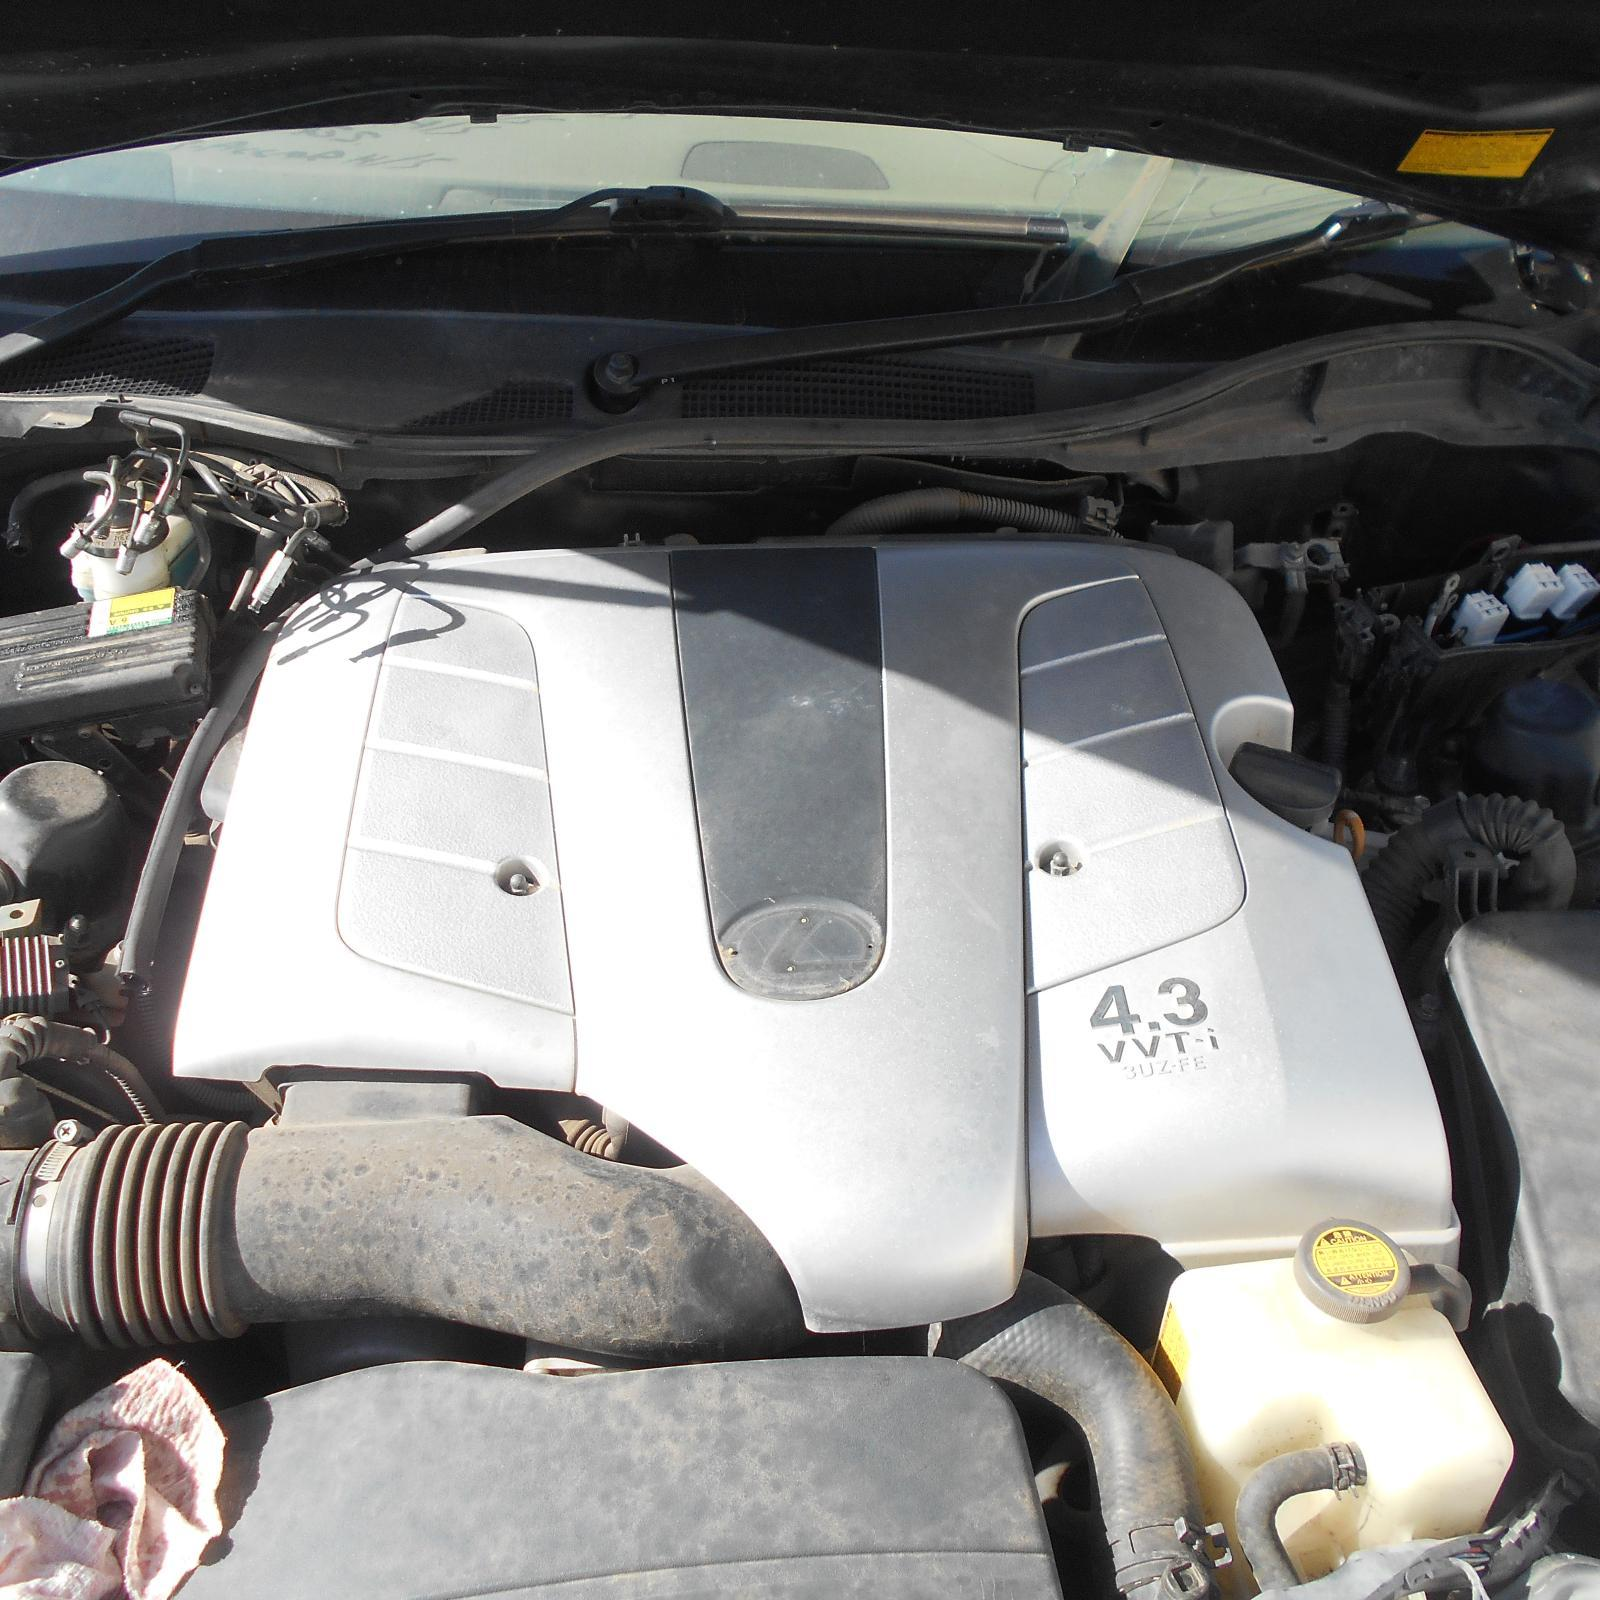 LEXUS GS, Engine, PETROL, 4.3, 3UZ, 190 SERIES, 03/05-01/08